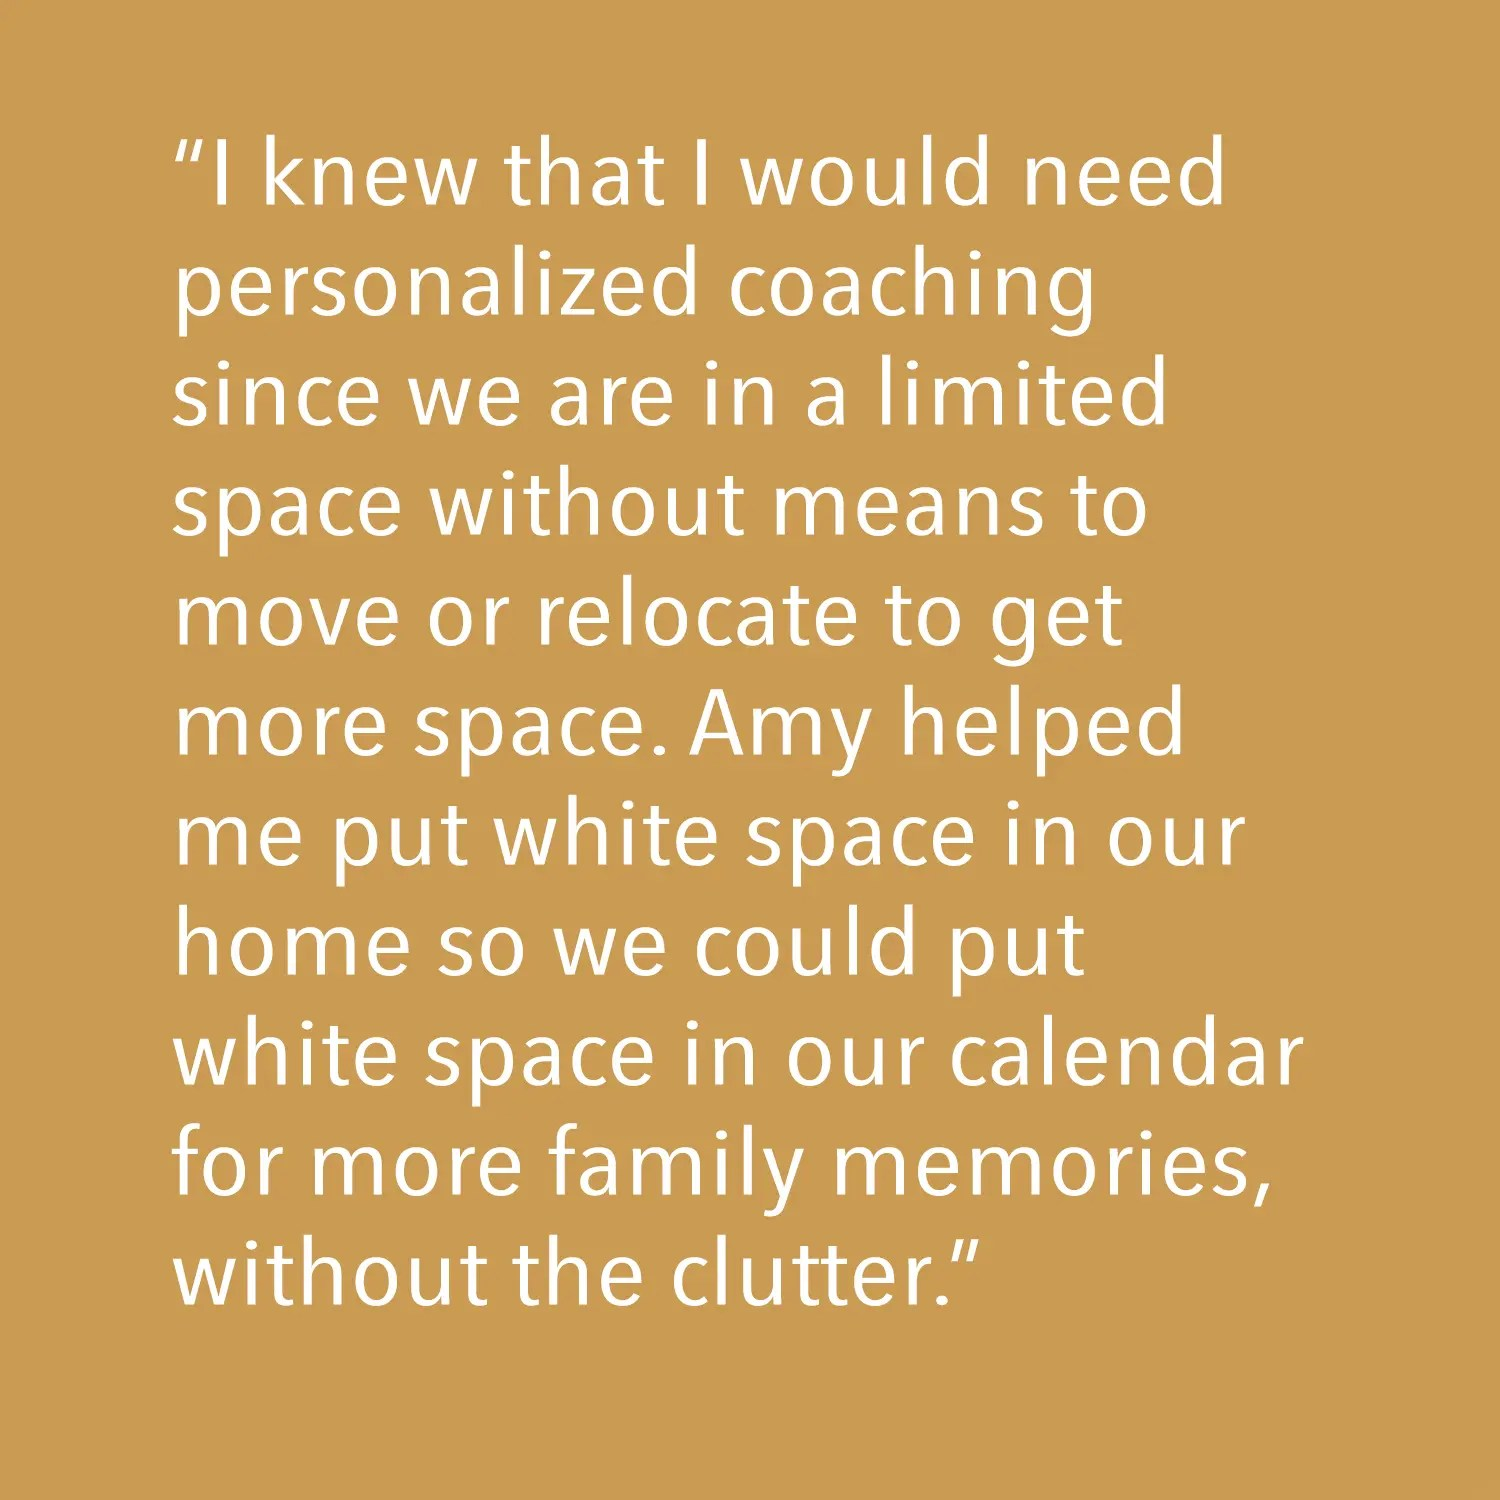 Testimonial - I knew that we would need personalized coaching